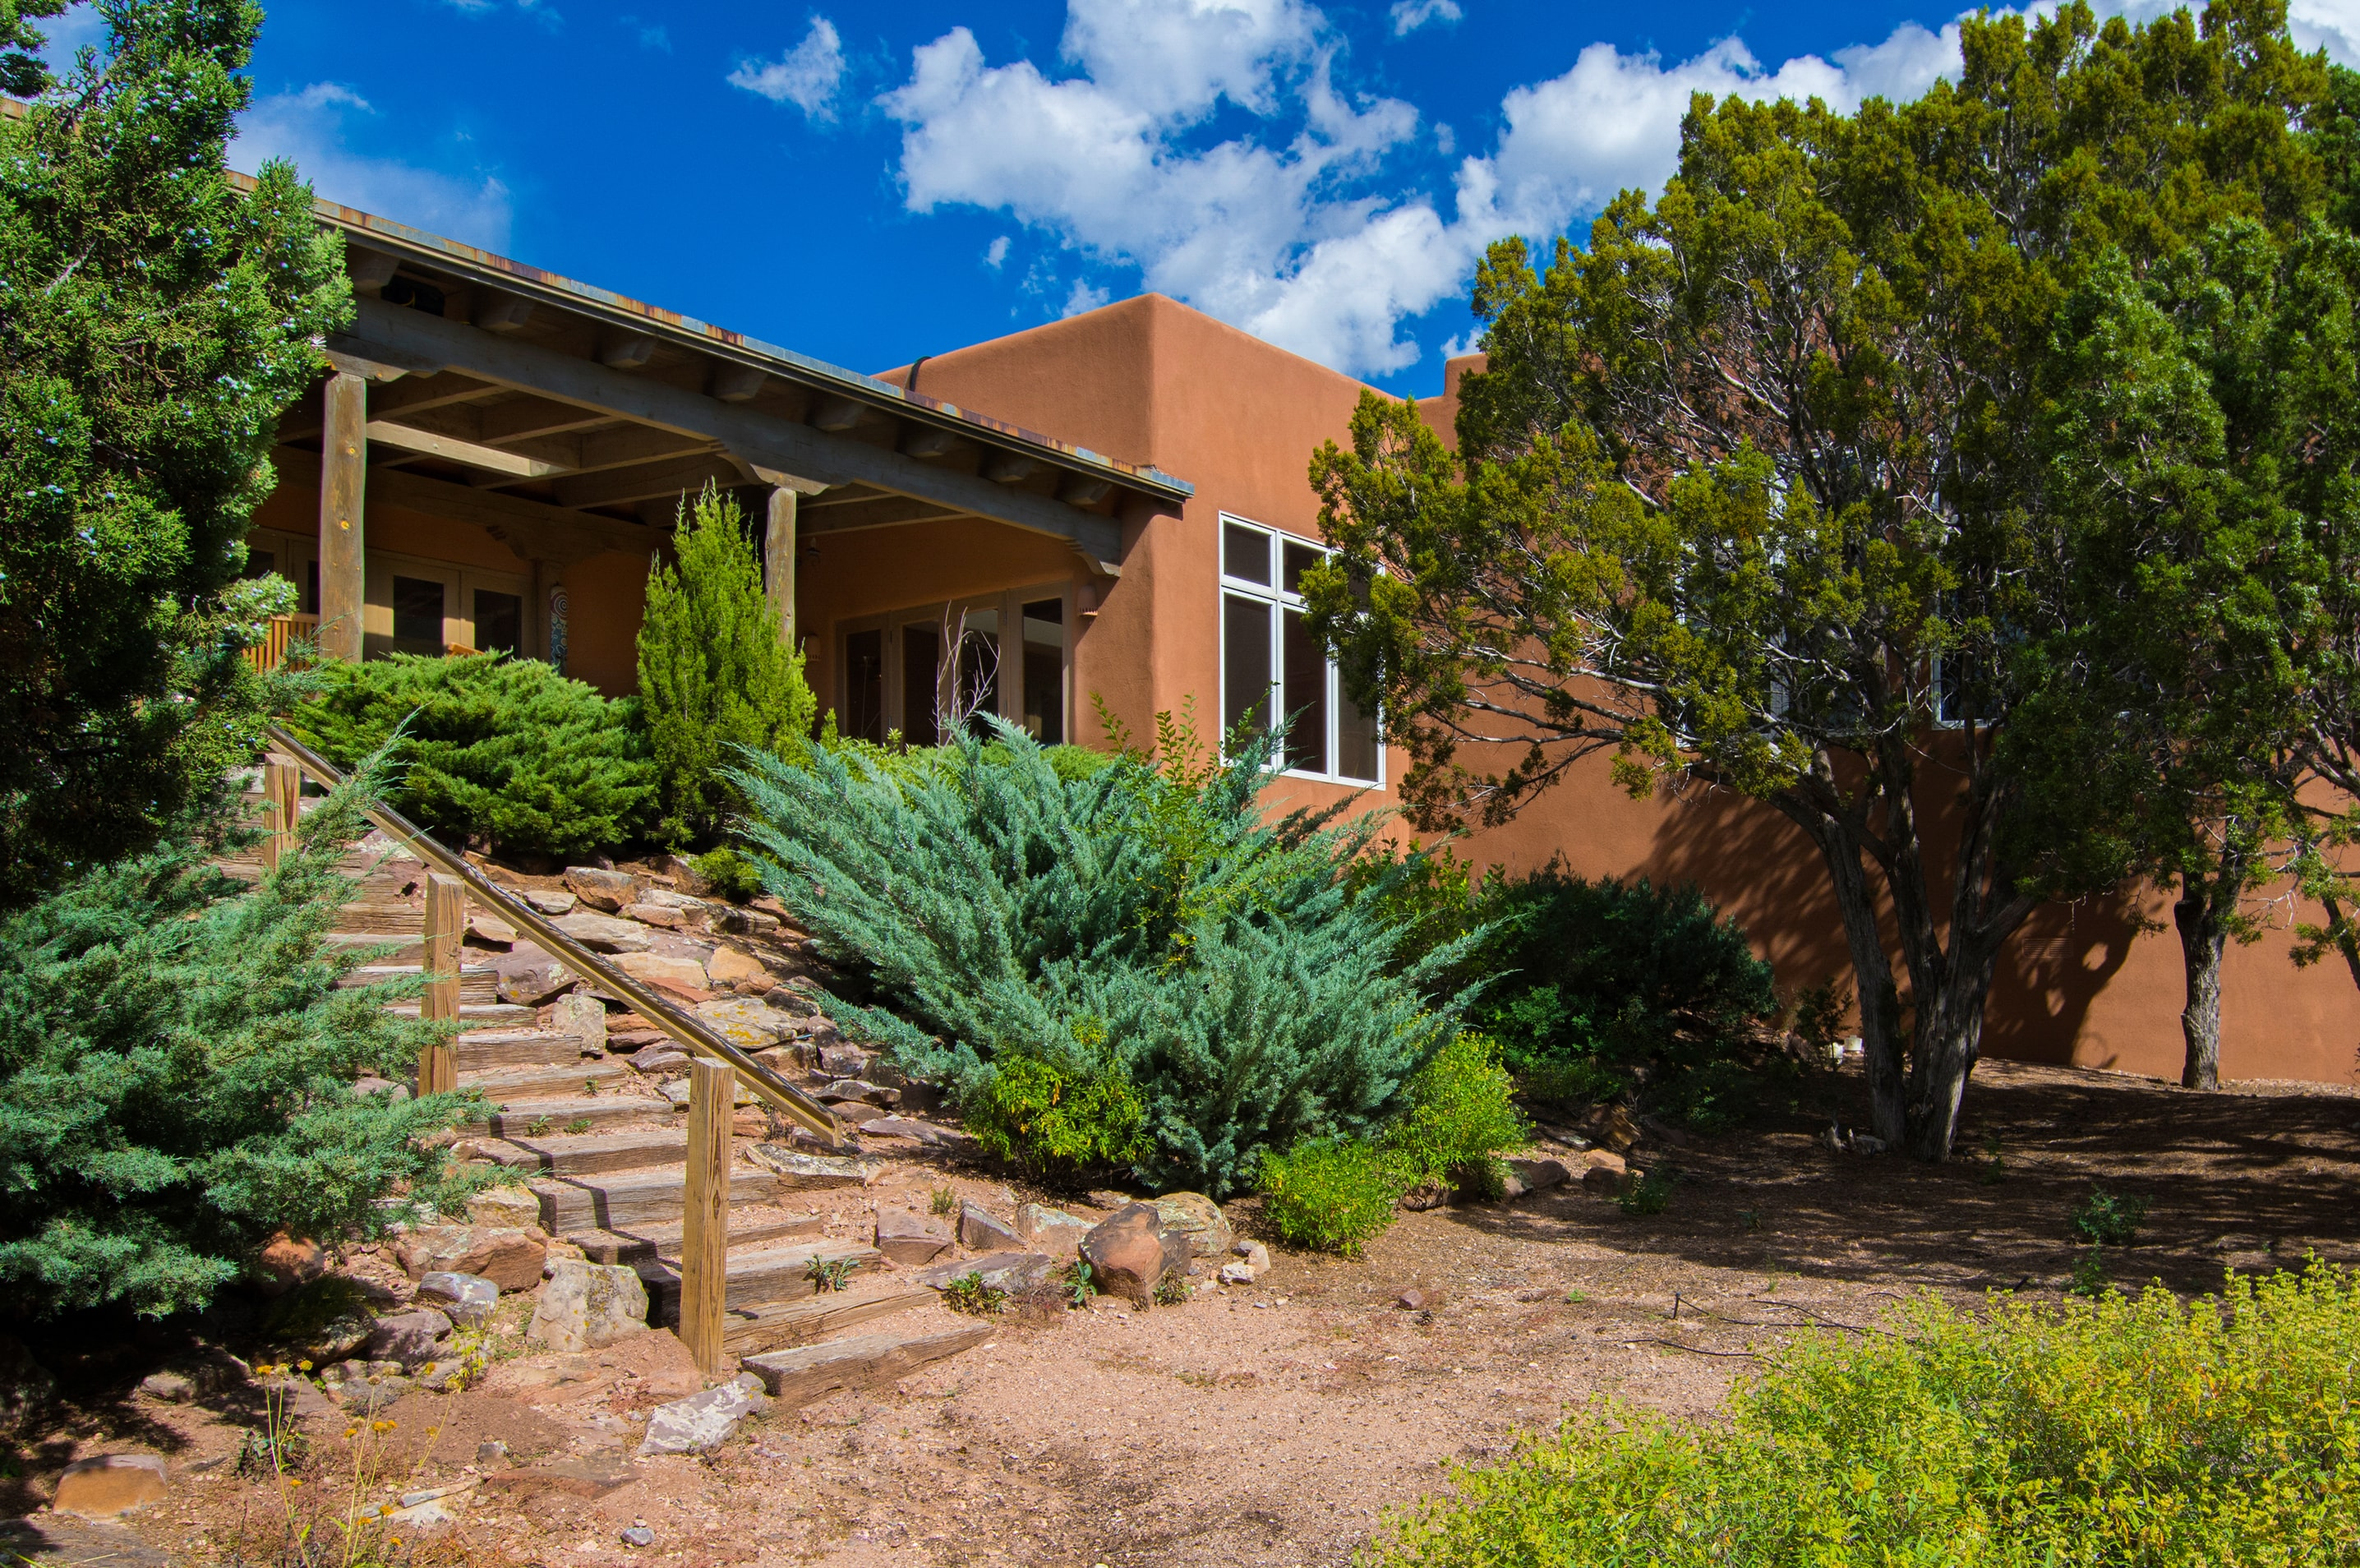 This Santa Fe manor sits on a 1-acre property approximately 1 mile from the Plaza.